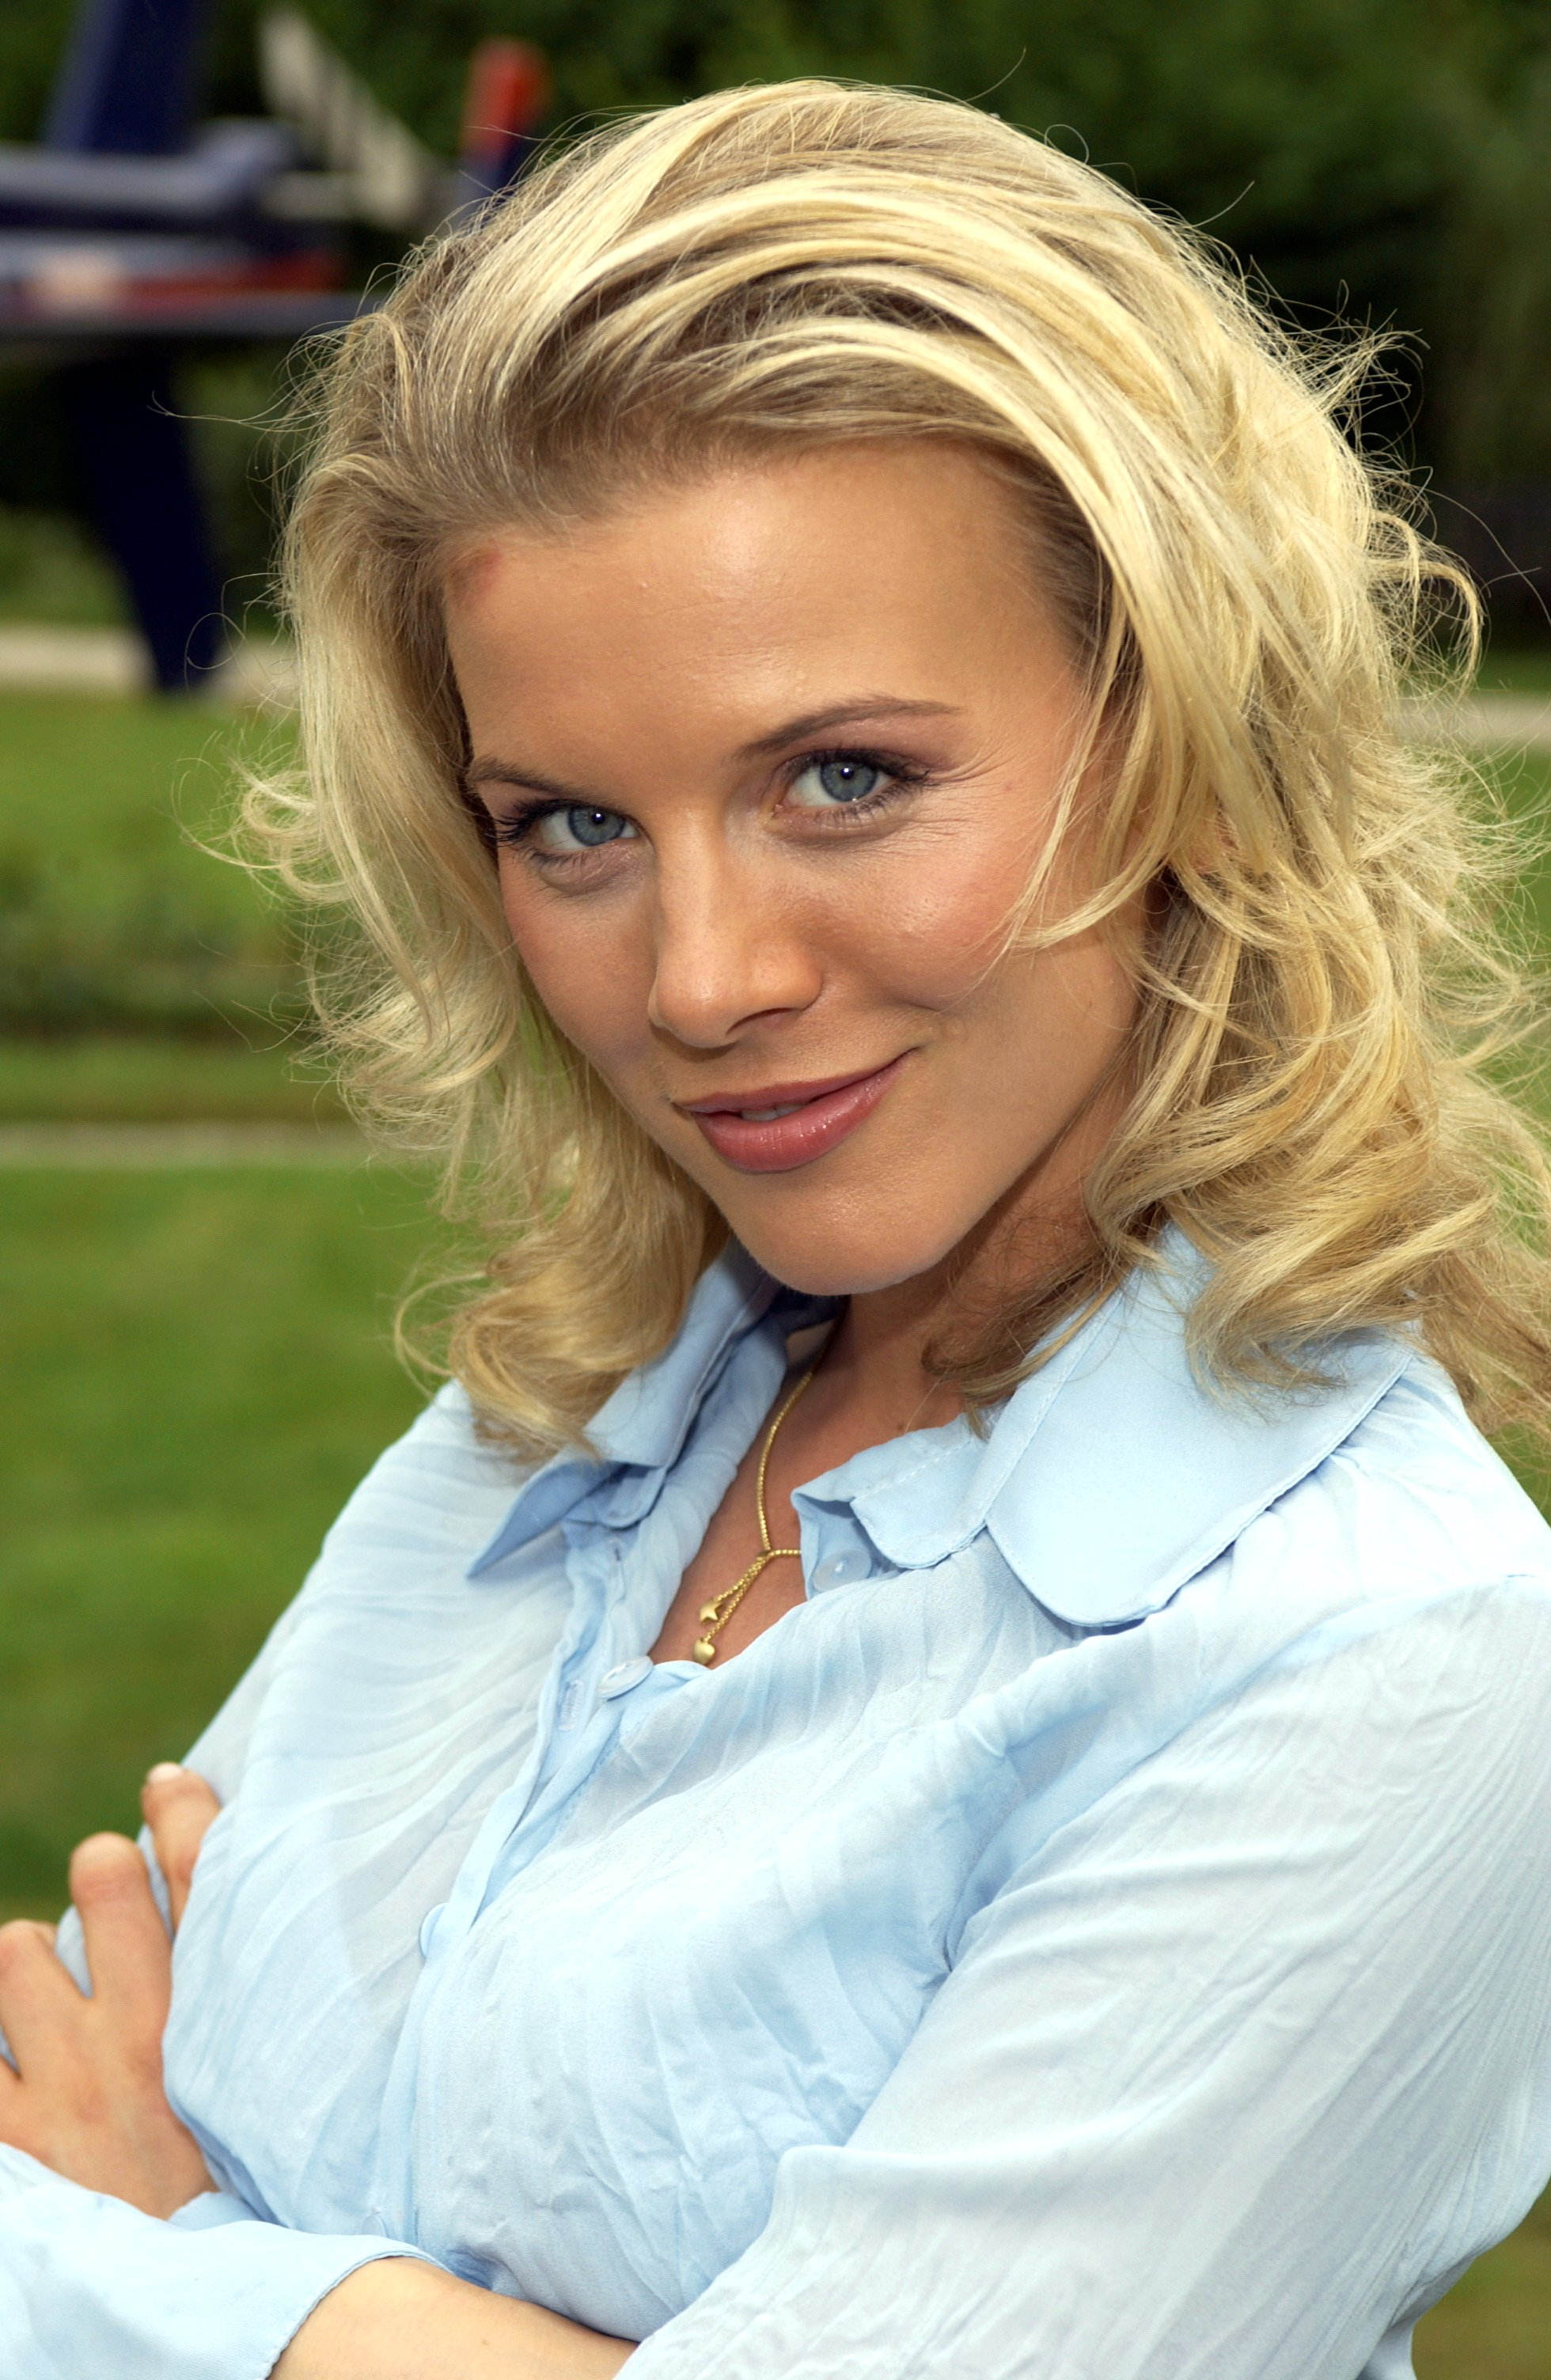 Eva Habermann photo #49602